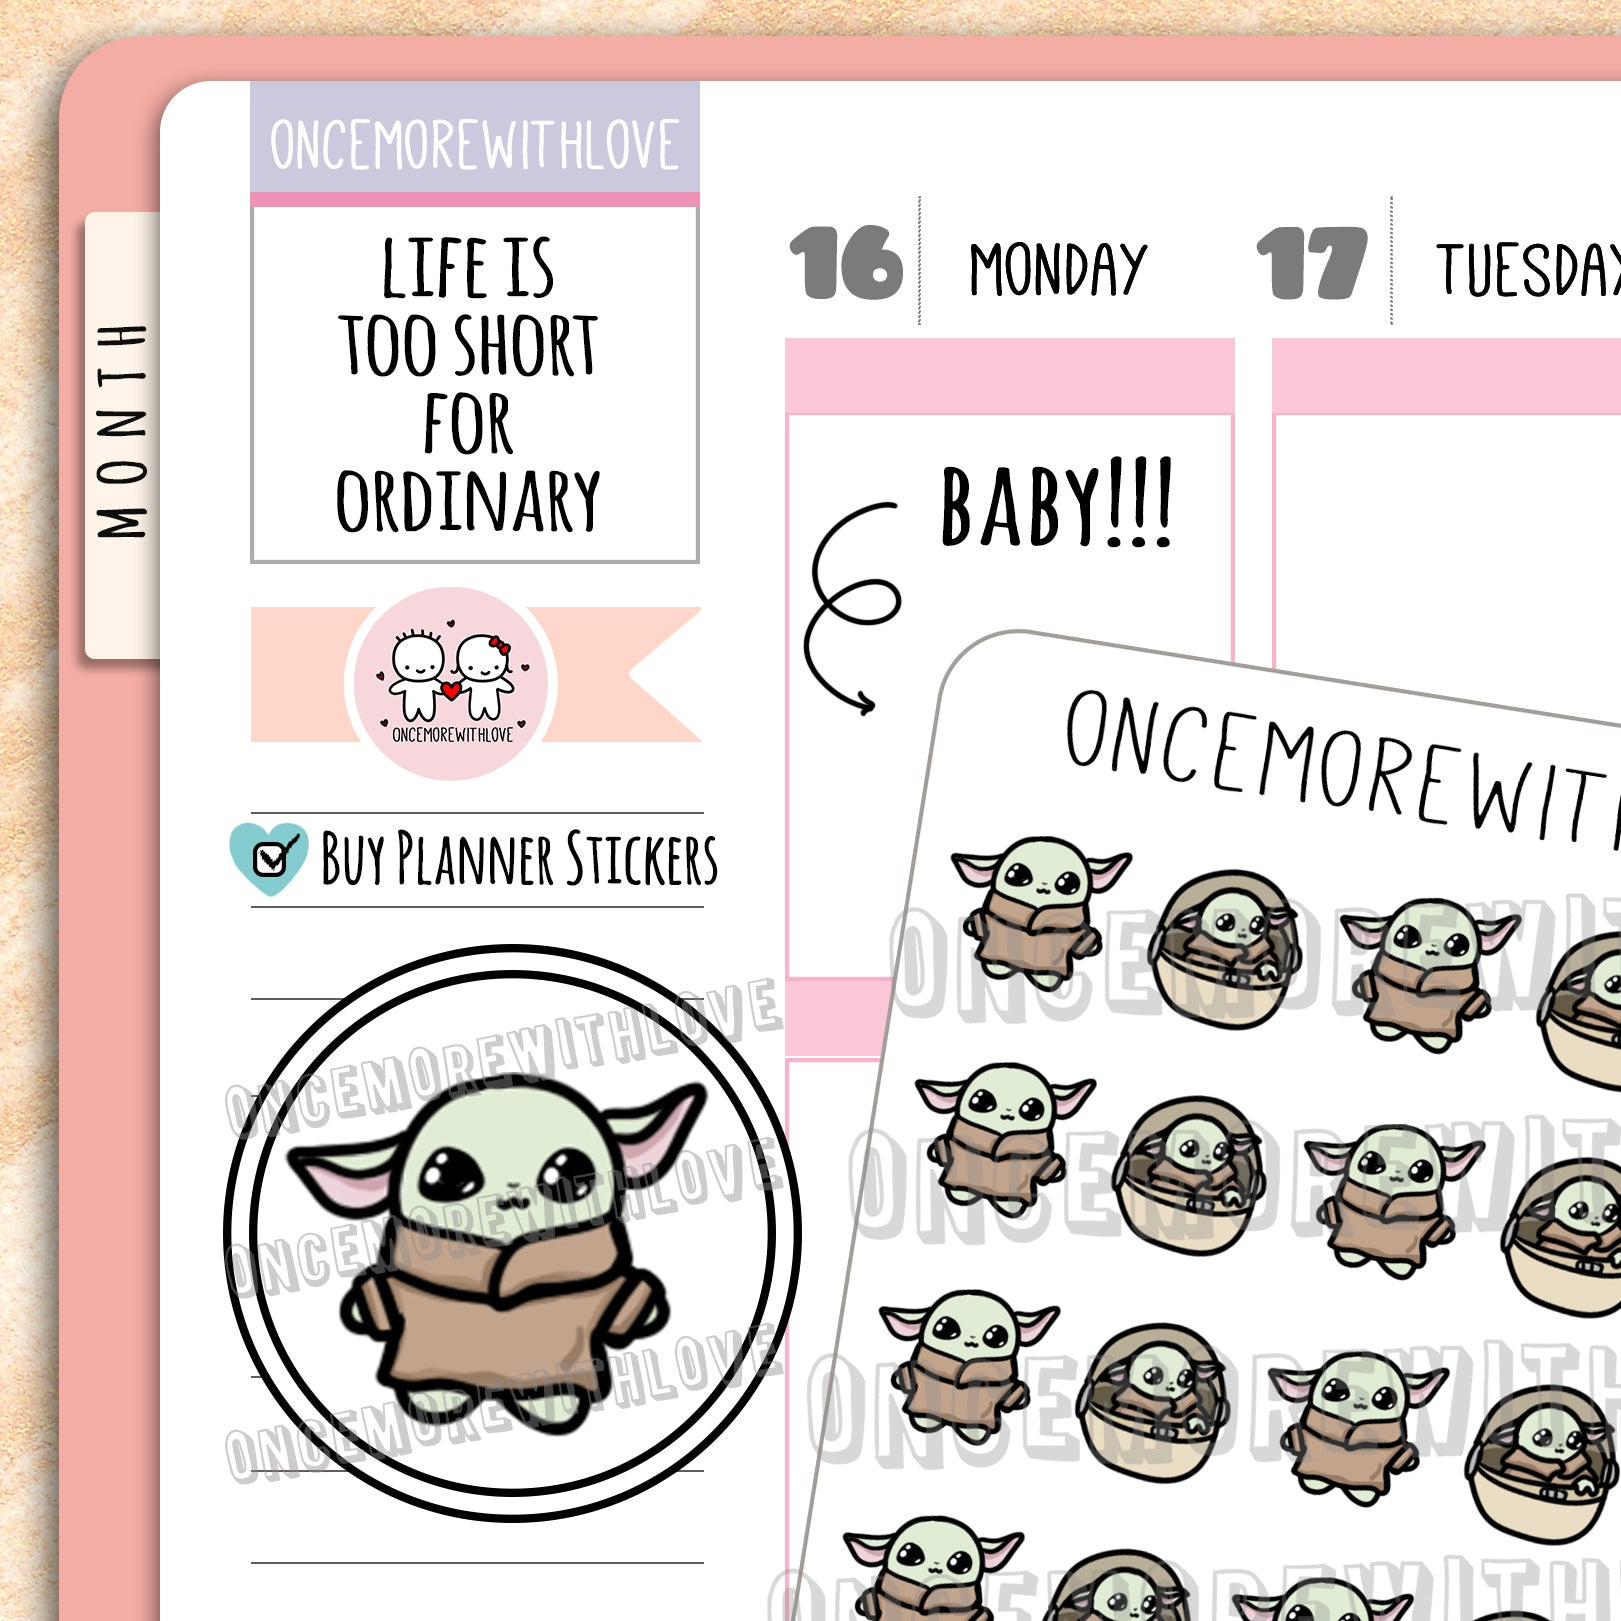 M701 - Baby Yodakin Munchkin Planner Stickers (FINAL STOCK)